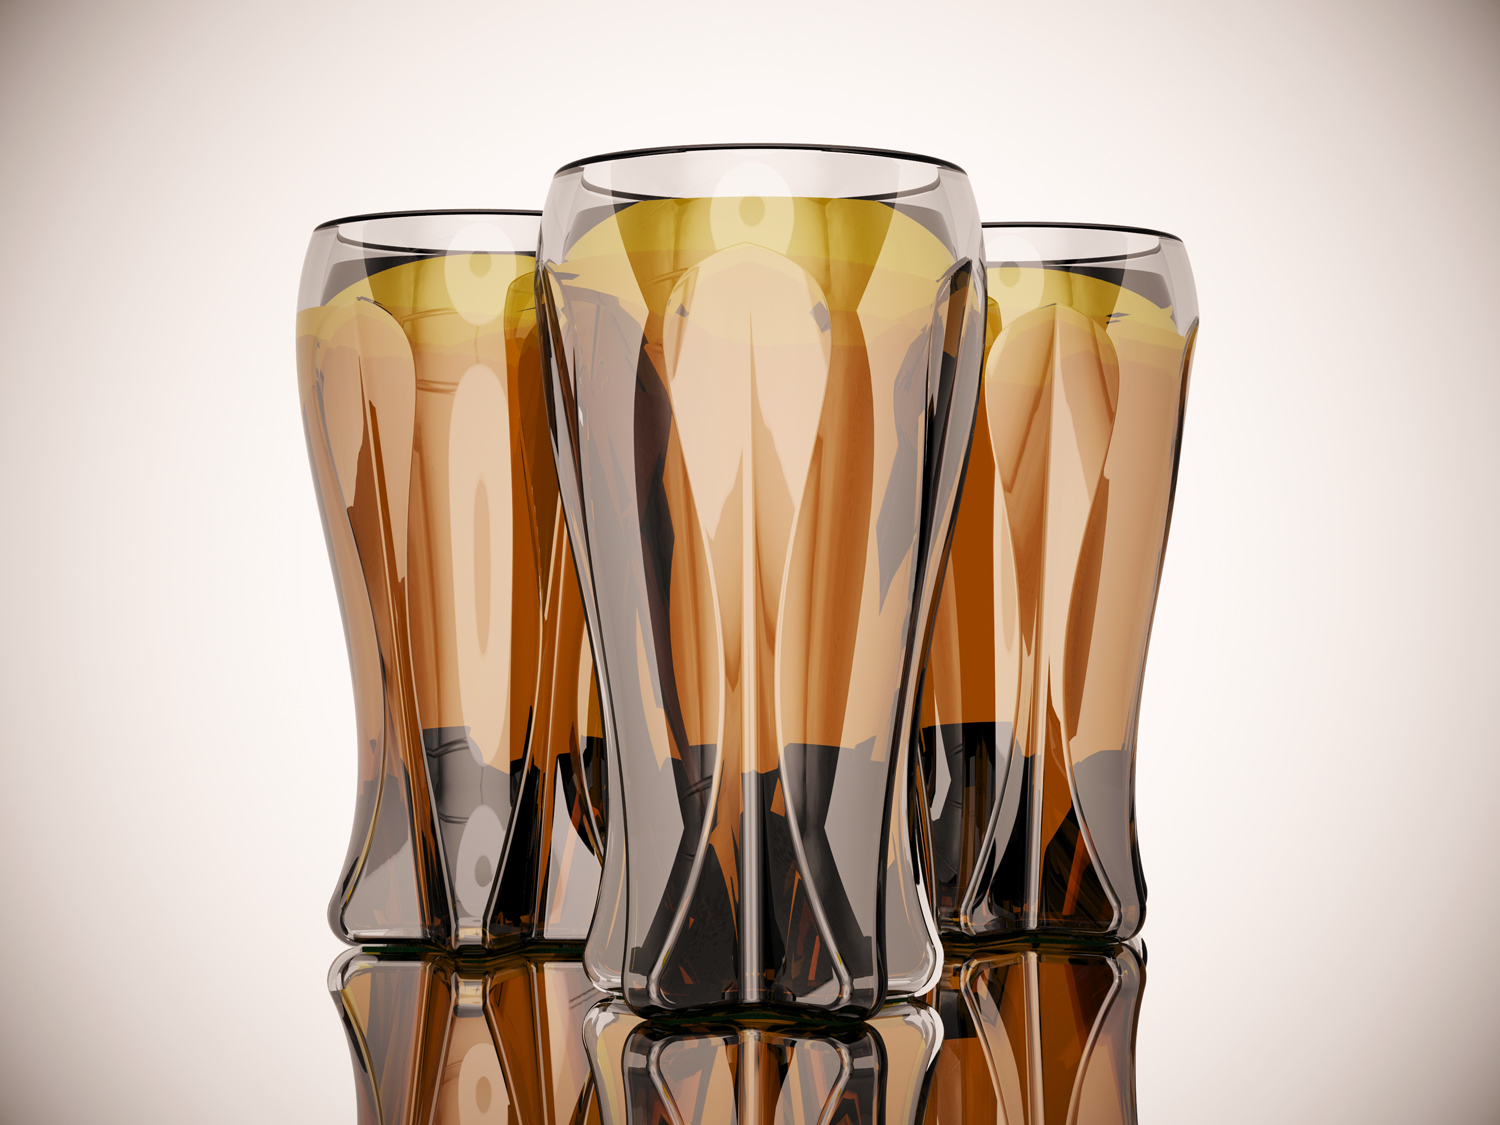 gianni renda's beer glass drinking for the no longer young  abler -  tall ambercolored double wall beer glasses with a vertical star